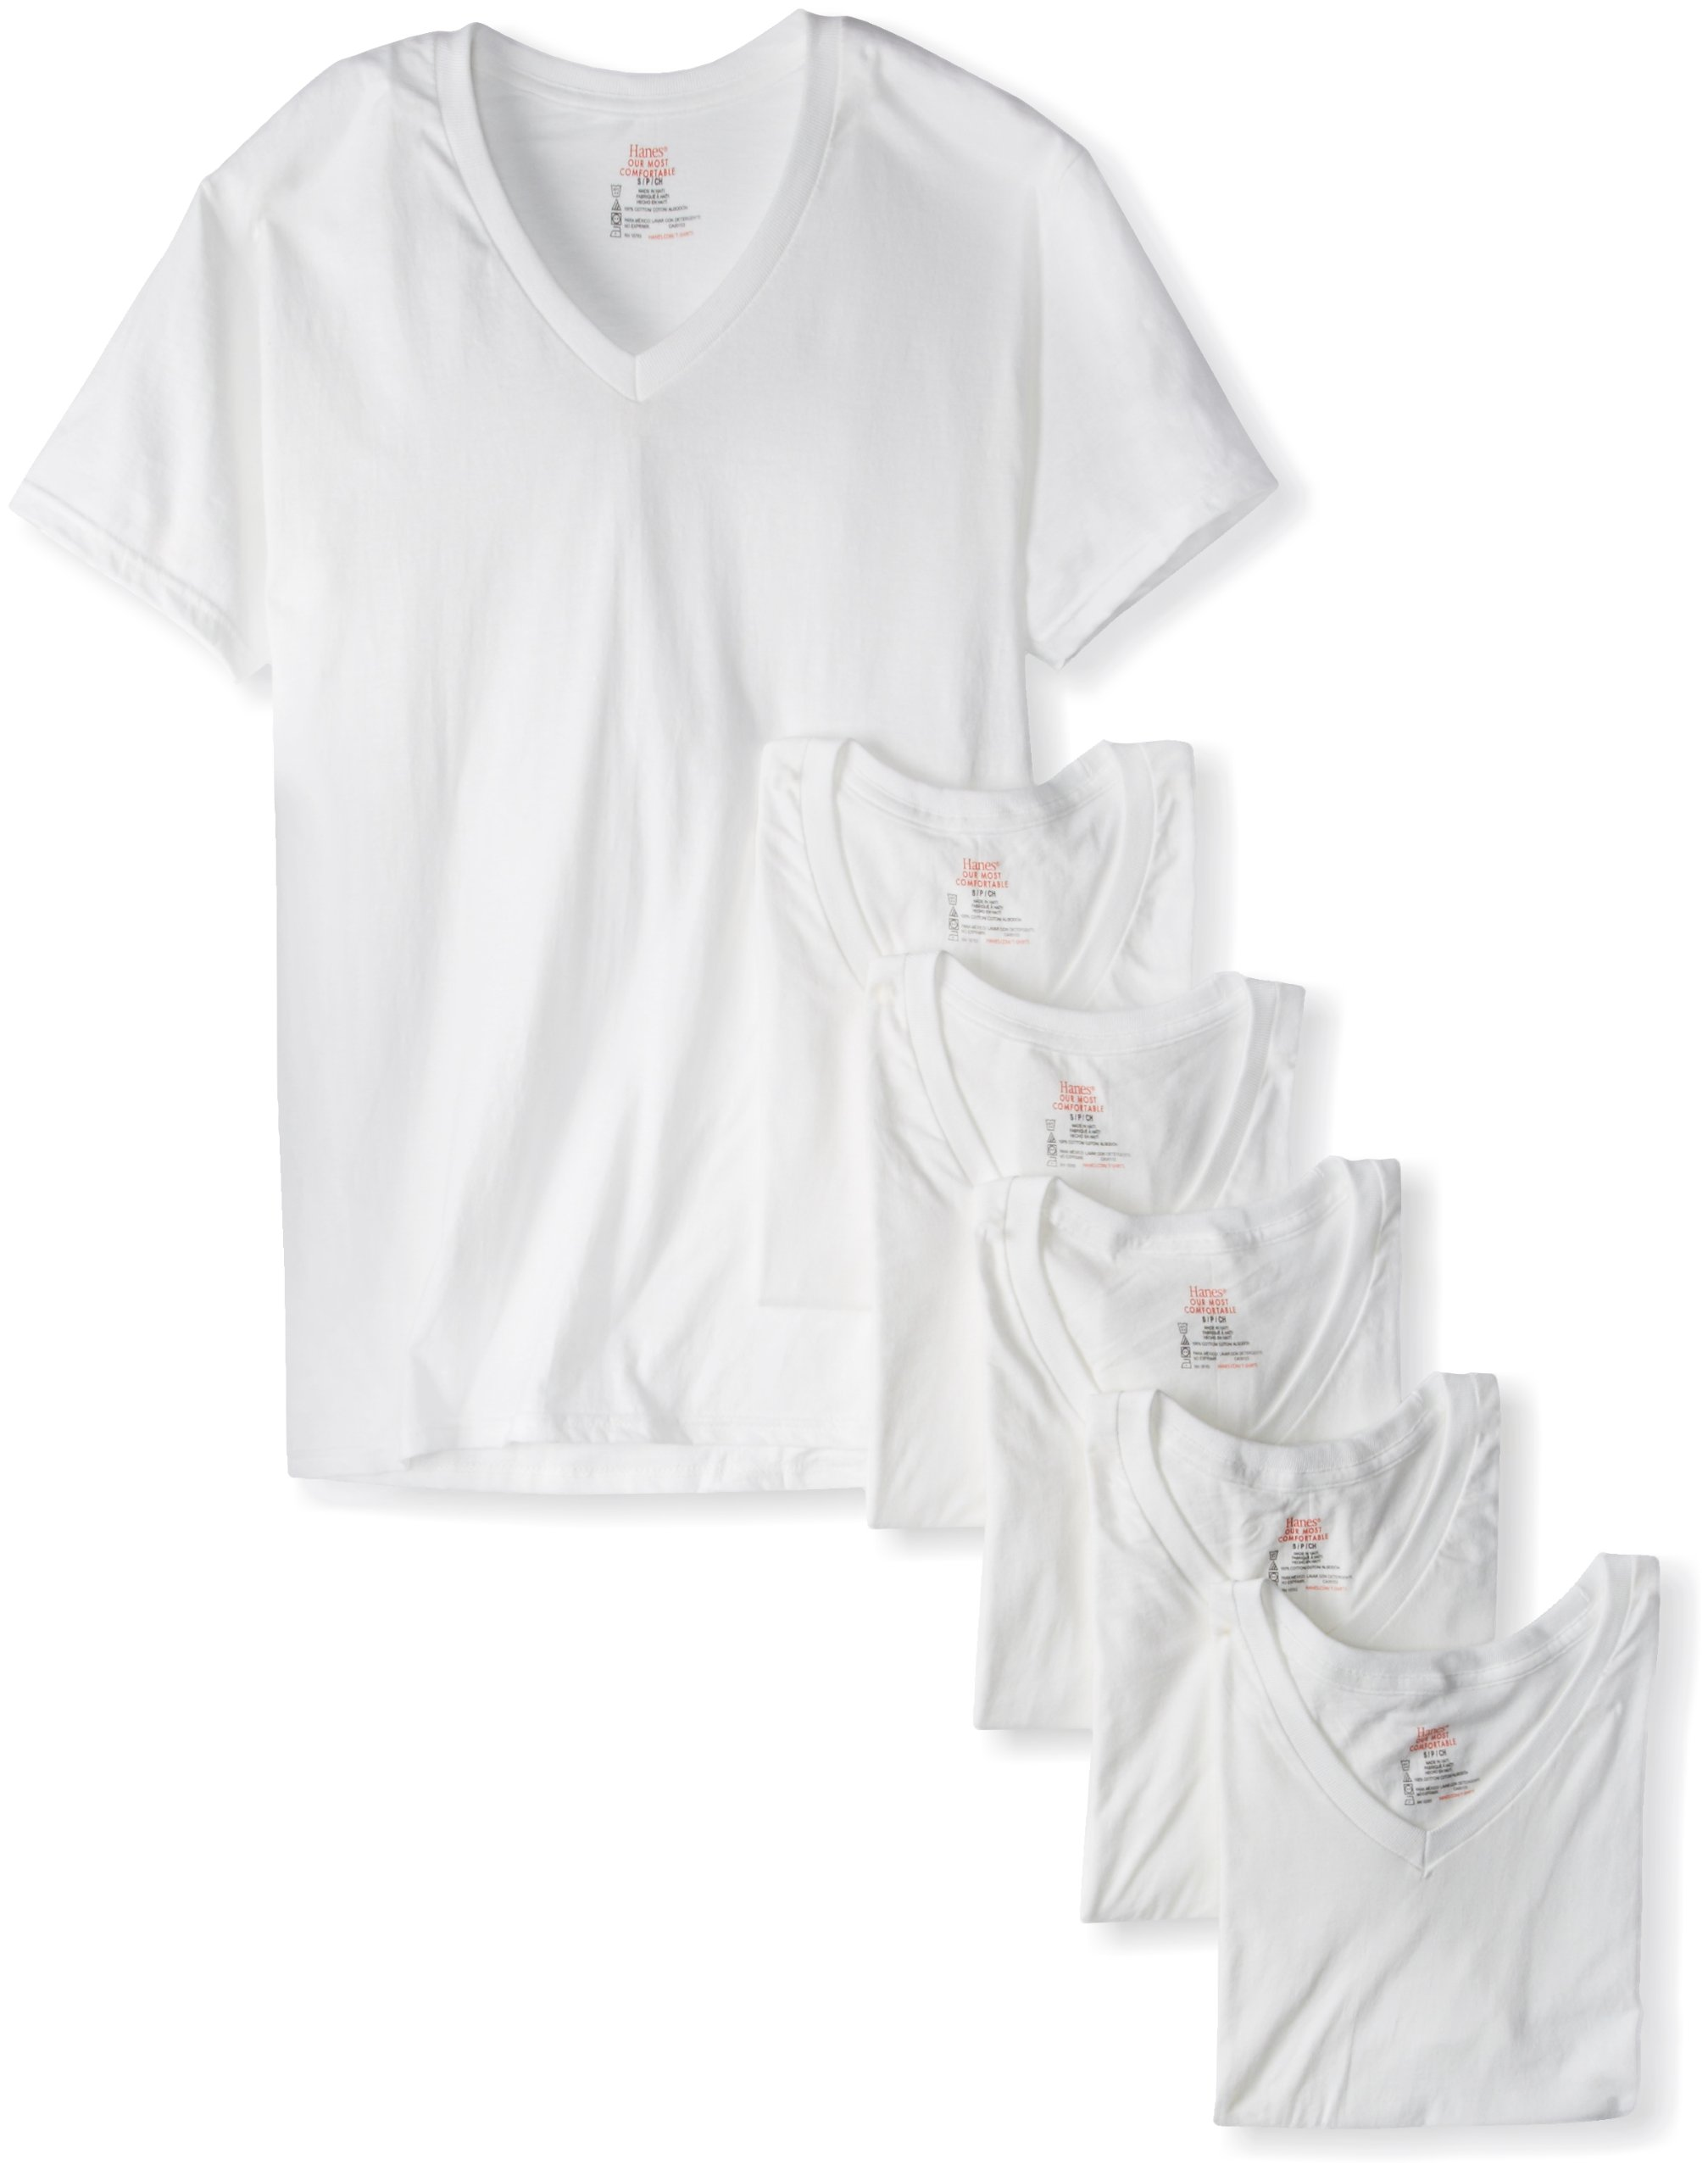 Hanes Ultimate Men's 6-Pack FreshIQ V-Neck Tee, White, Large by Hanes Ultimate (Image #1)